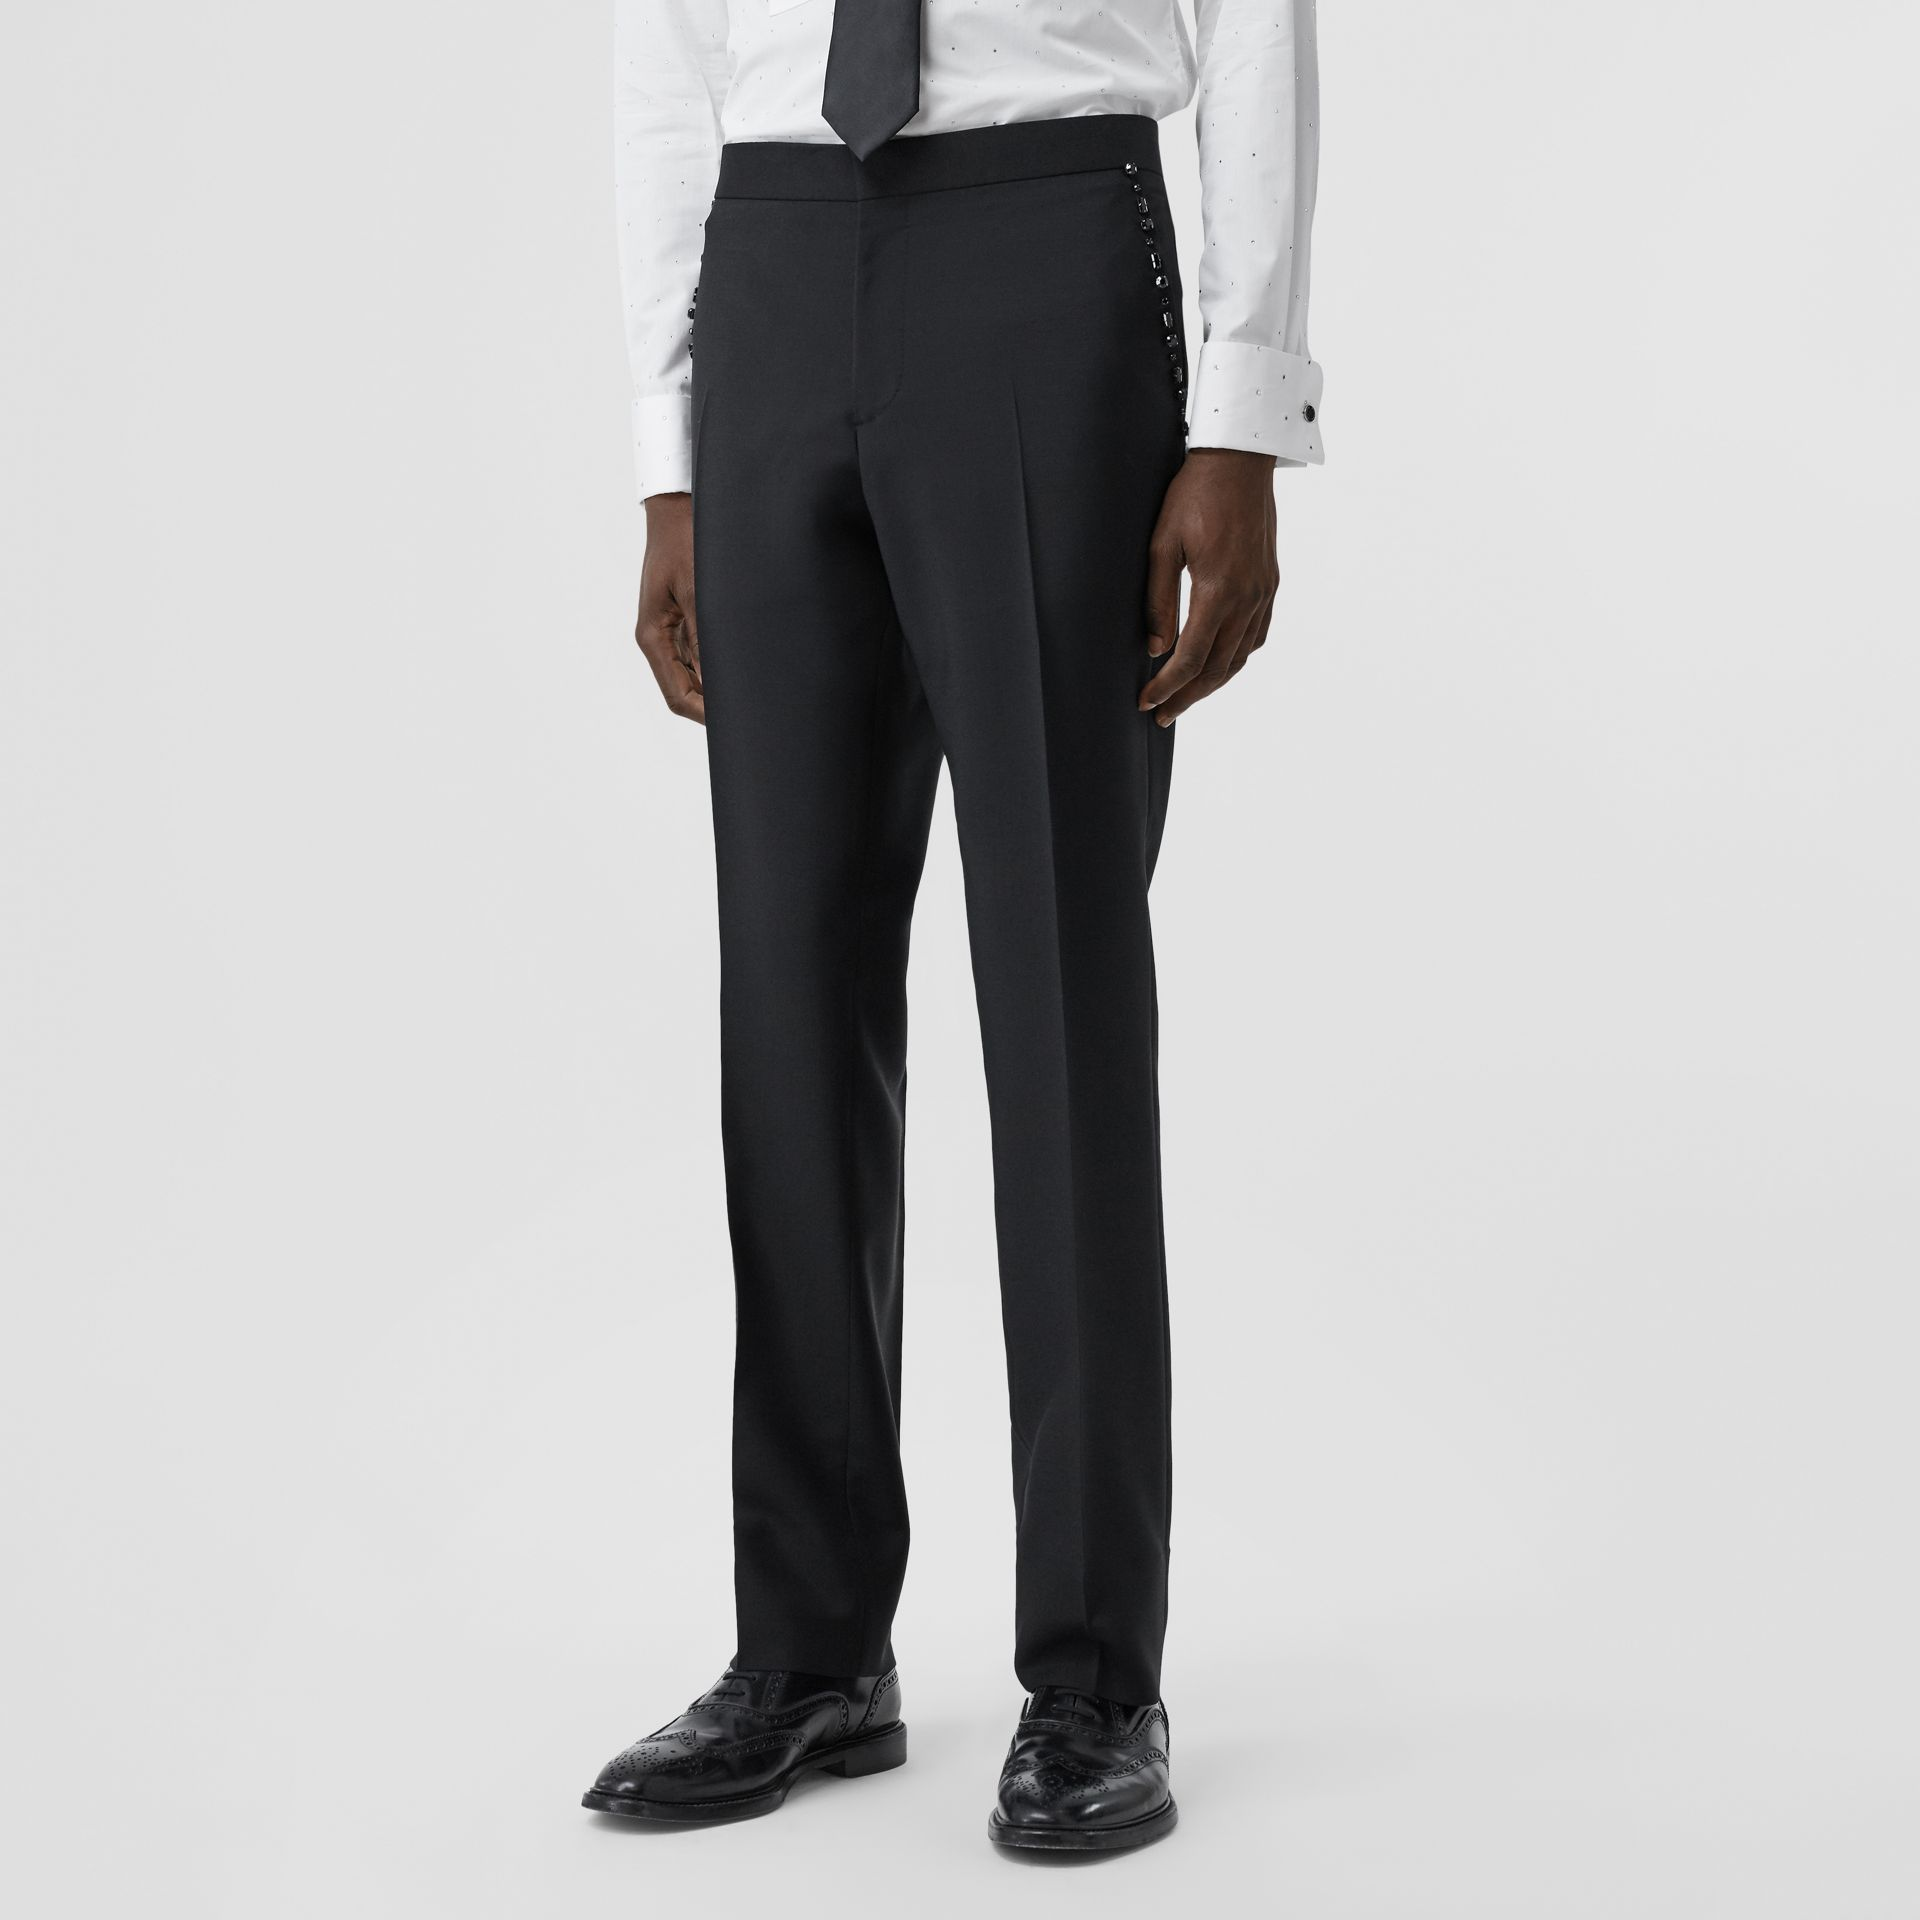 Classic Fit Embellished Mohair Wool Tailored Trousers in Black - Men | Burberry - gallery image 4